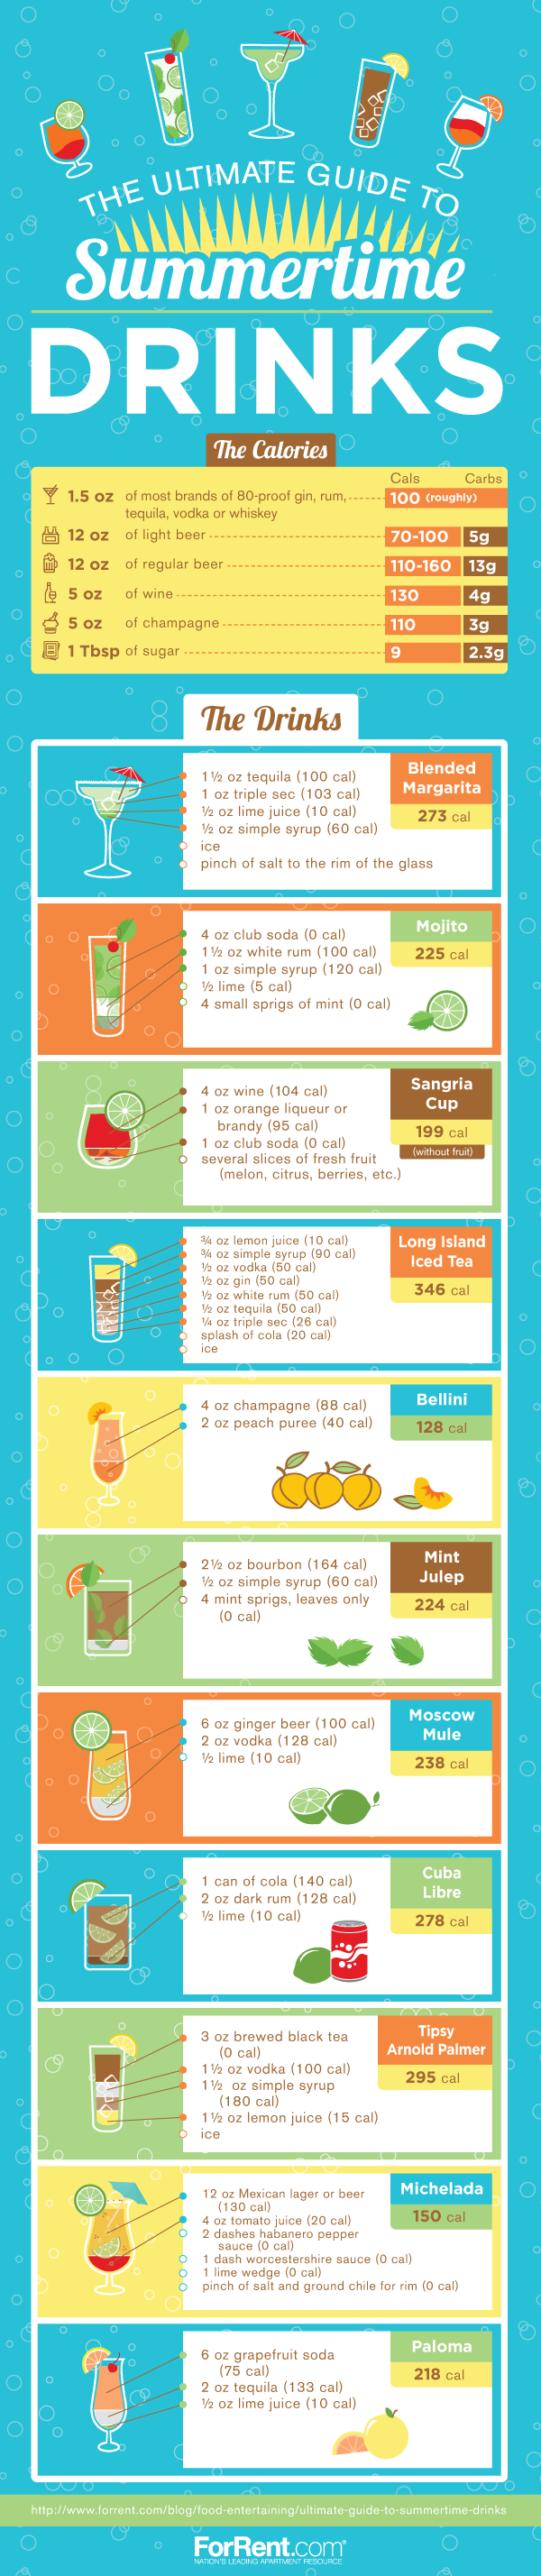 The Ultimate Guide to Summertime Drinks